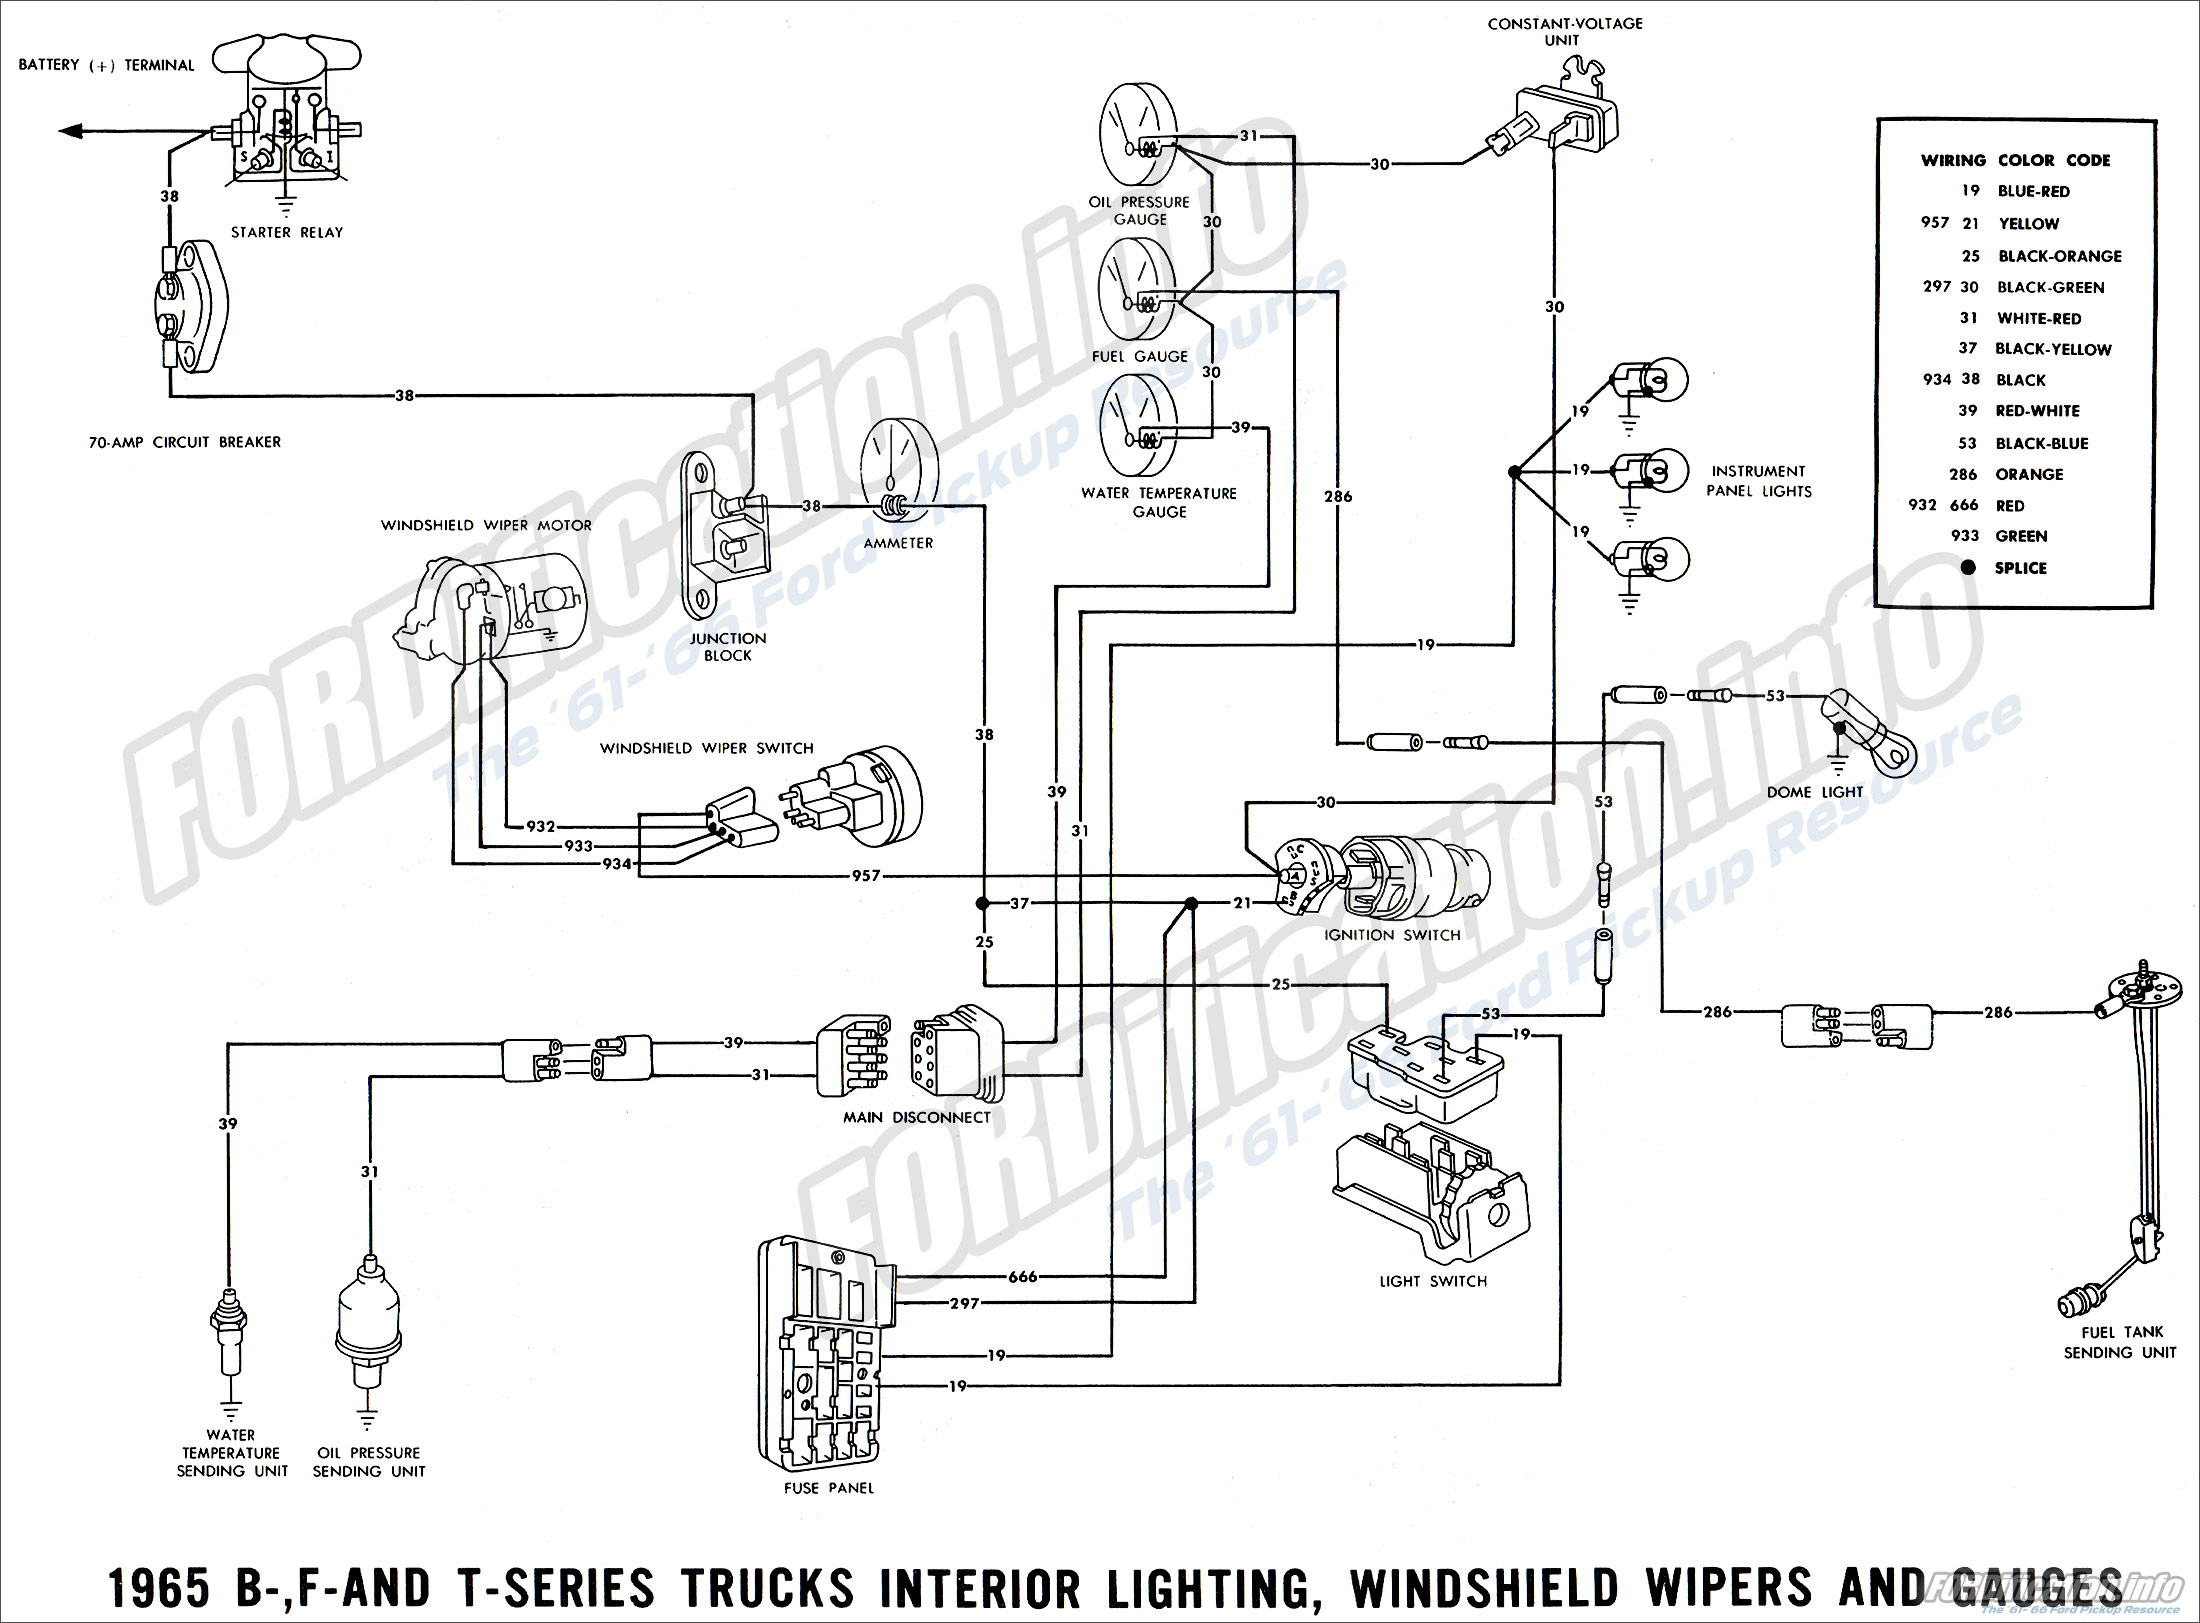 1965 ford truck wiring diagrams - fordification.info - the ... 1965 f100 ignition switch wiring diagram #12